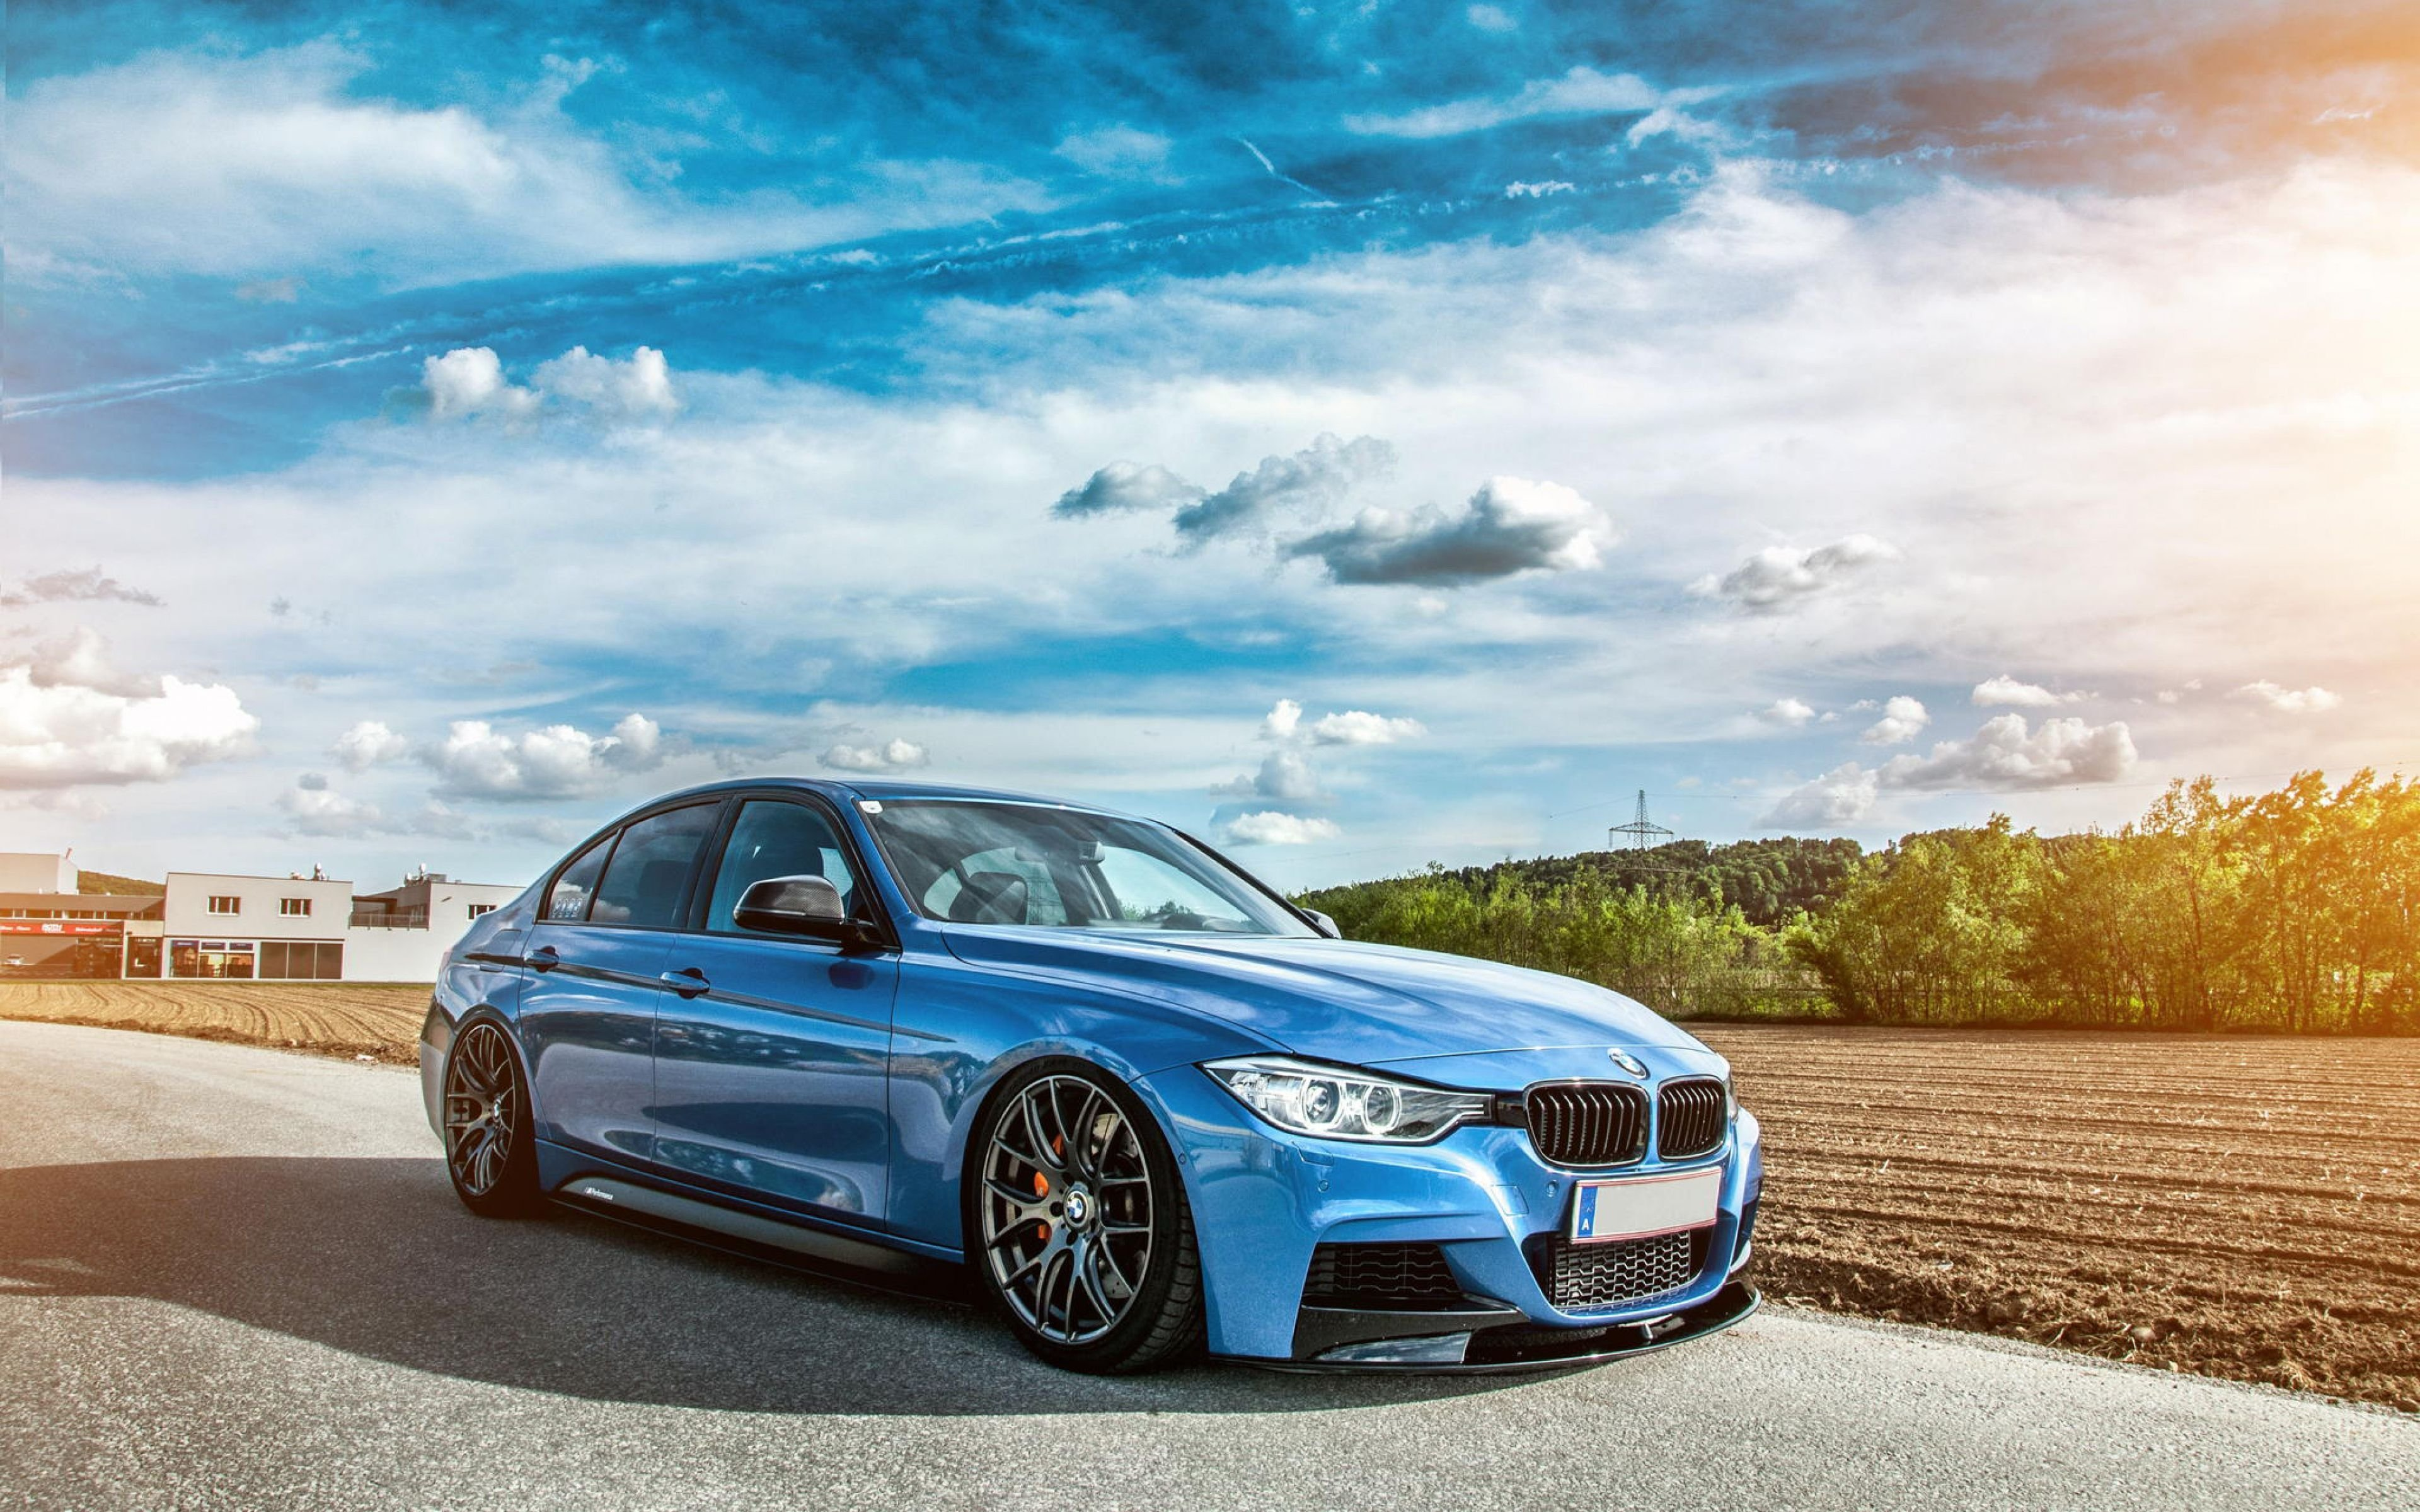 New Ultra Hd 4K Bmw Wallpapers Hd Desktop Backgrounds On This Month